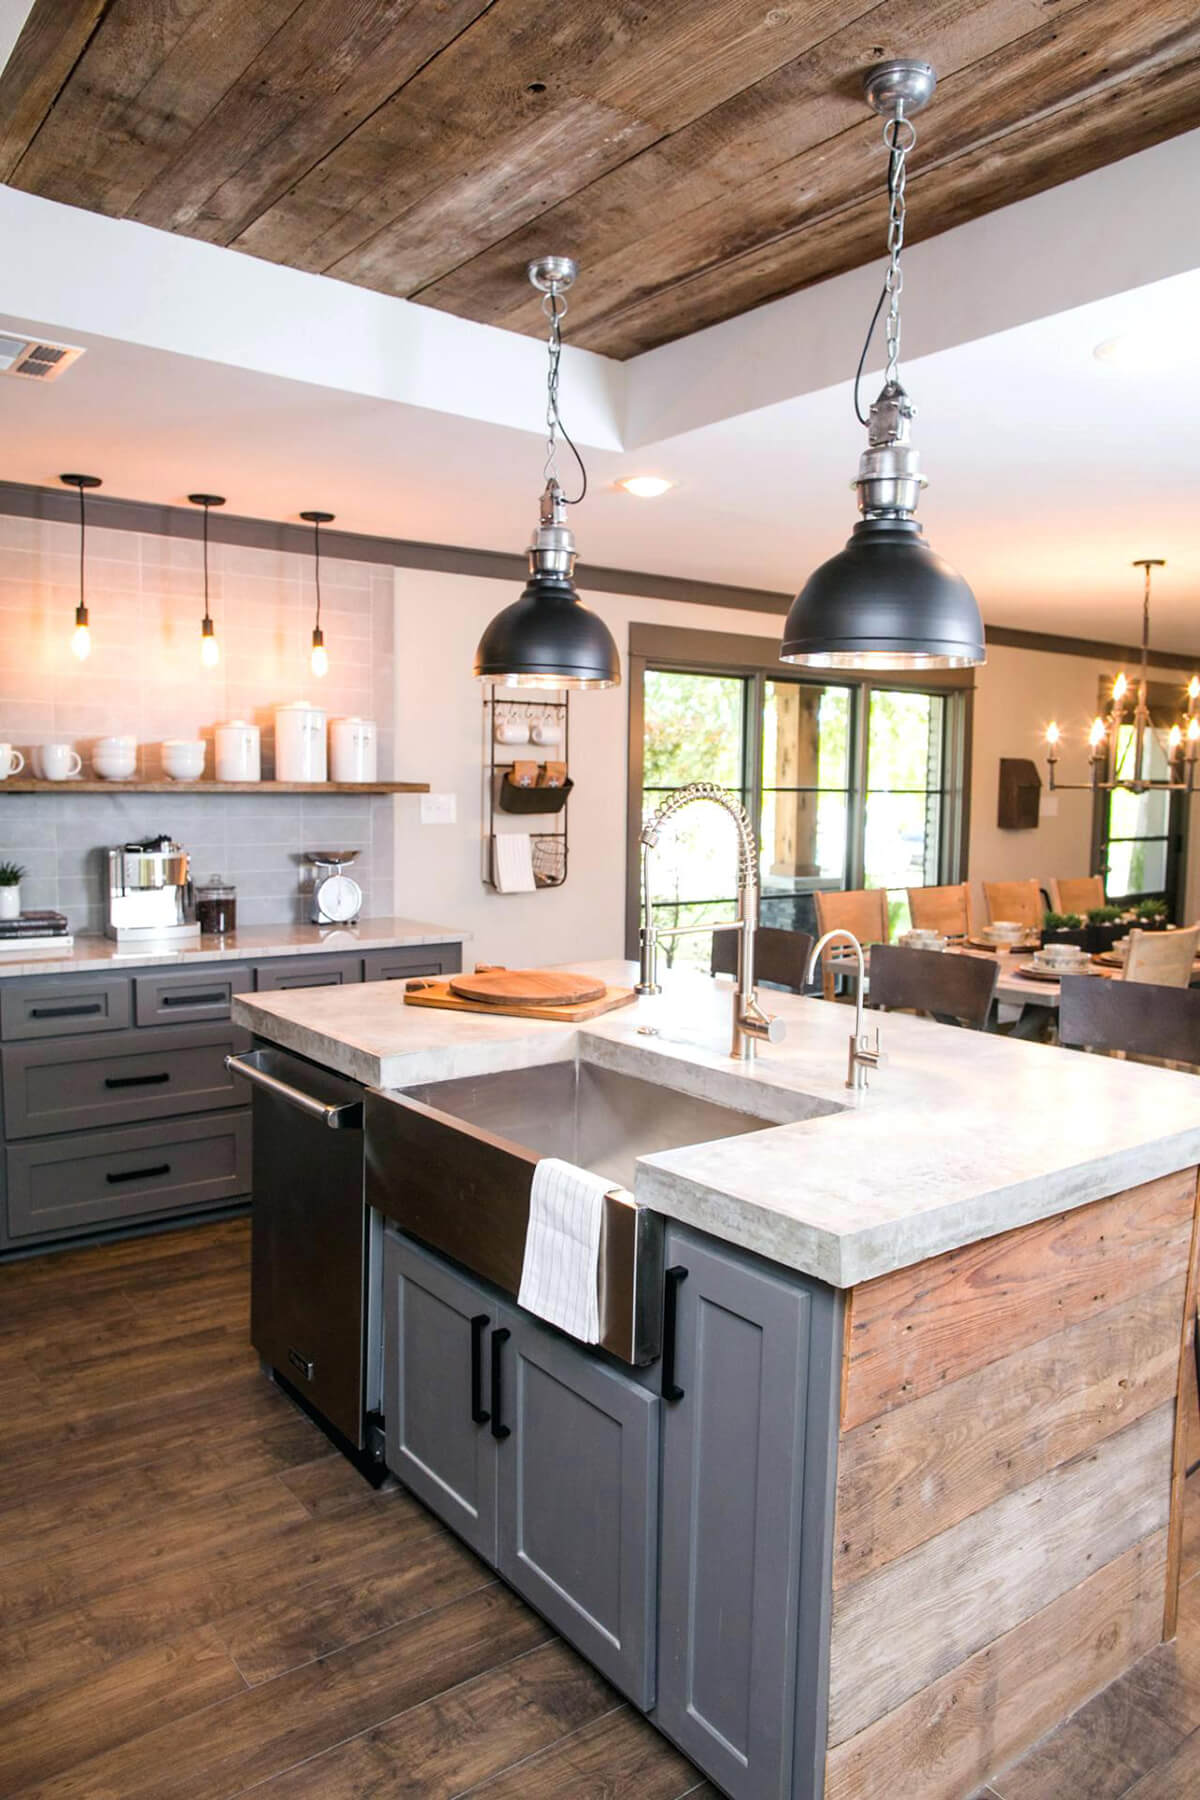 35 Best Farmhouse Kitchen Cabinet Ideas and Designs for 2020 on Rustic Farmhouse Kitchen  id=52142